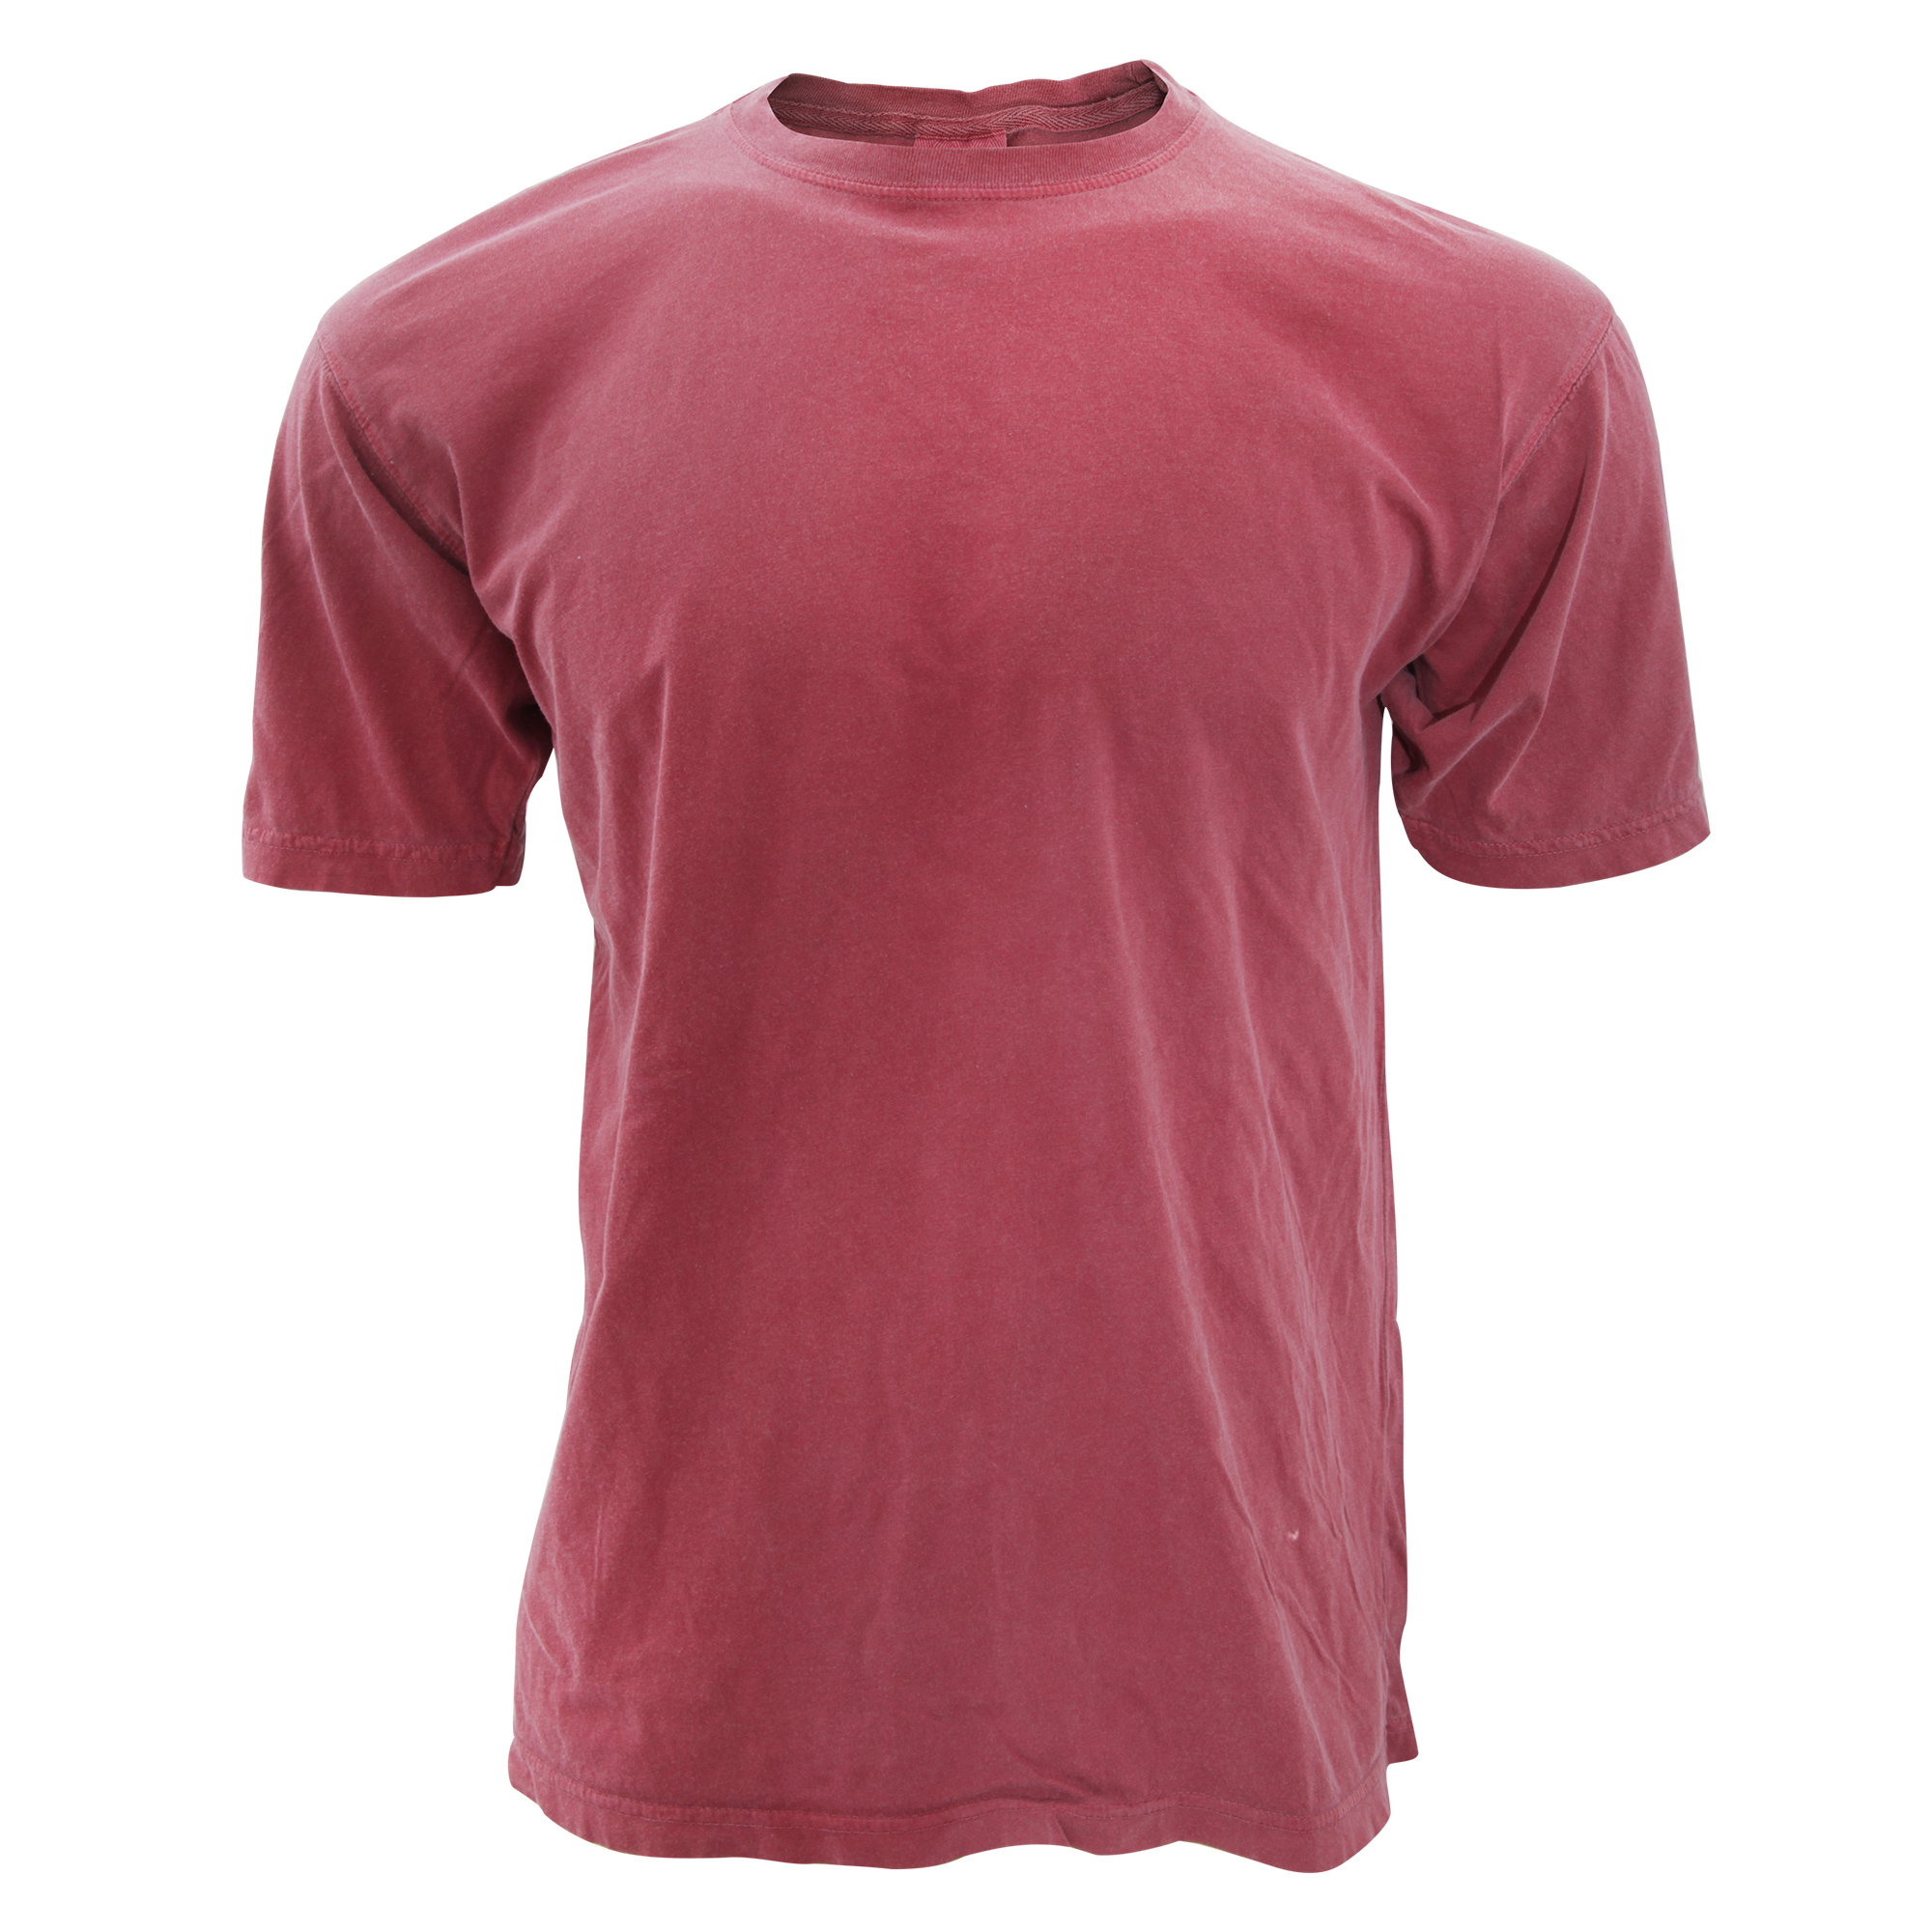 Adults Short Sleeve Plain T-shirts Color. These shirts will shrink after wash. Sleeve: Short sleeve. Material: Cotton/ Cotton Blend. Approximate size chart Each size may have.